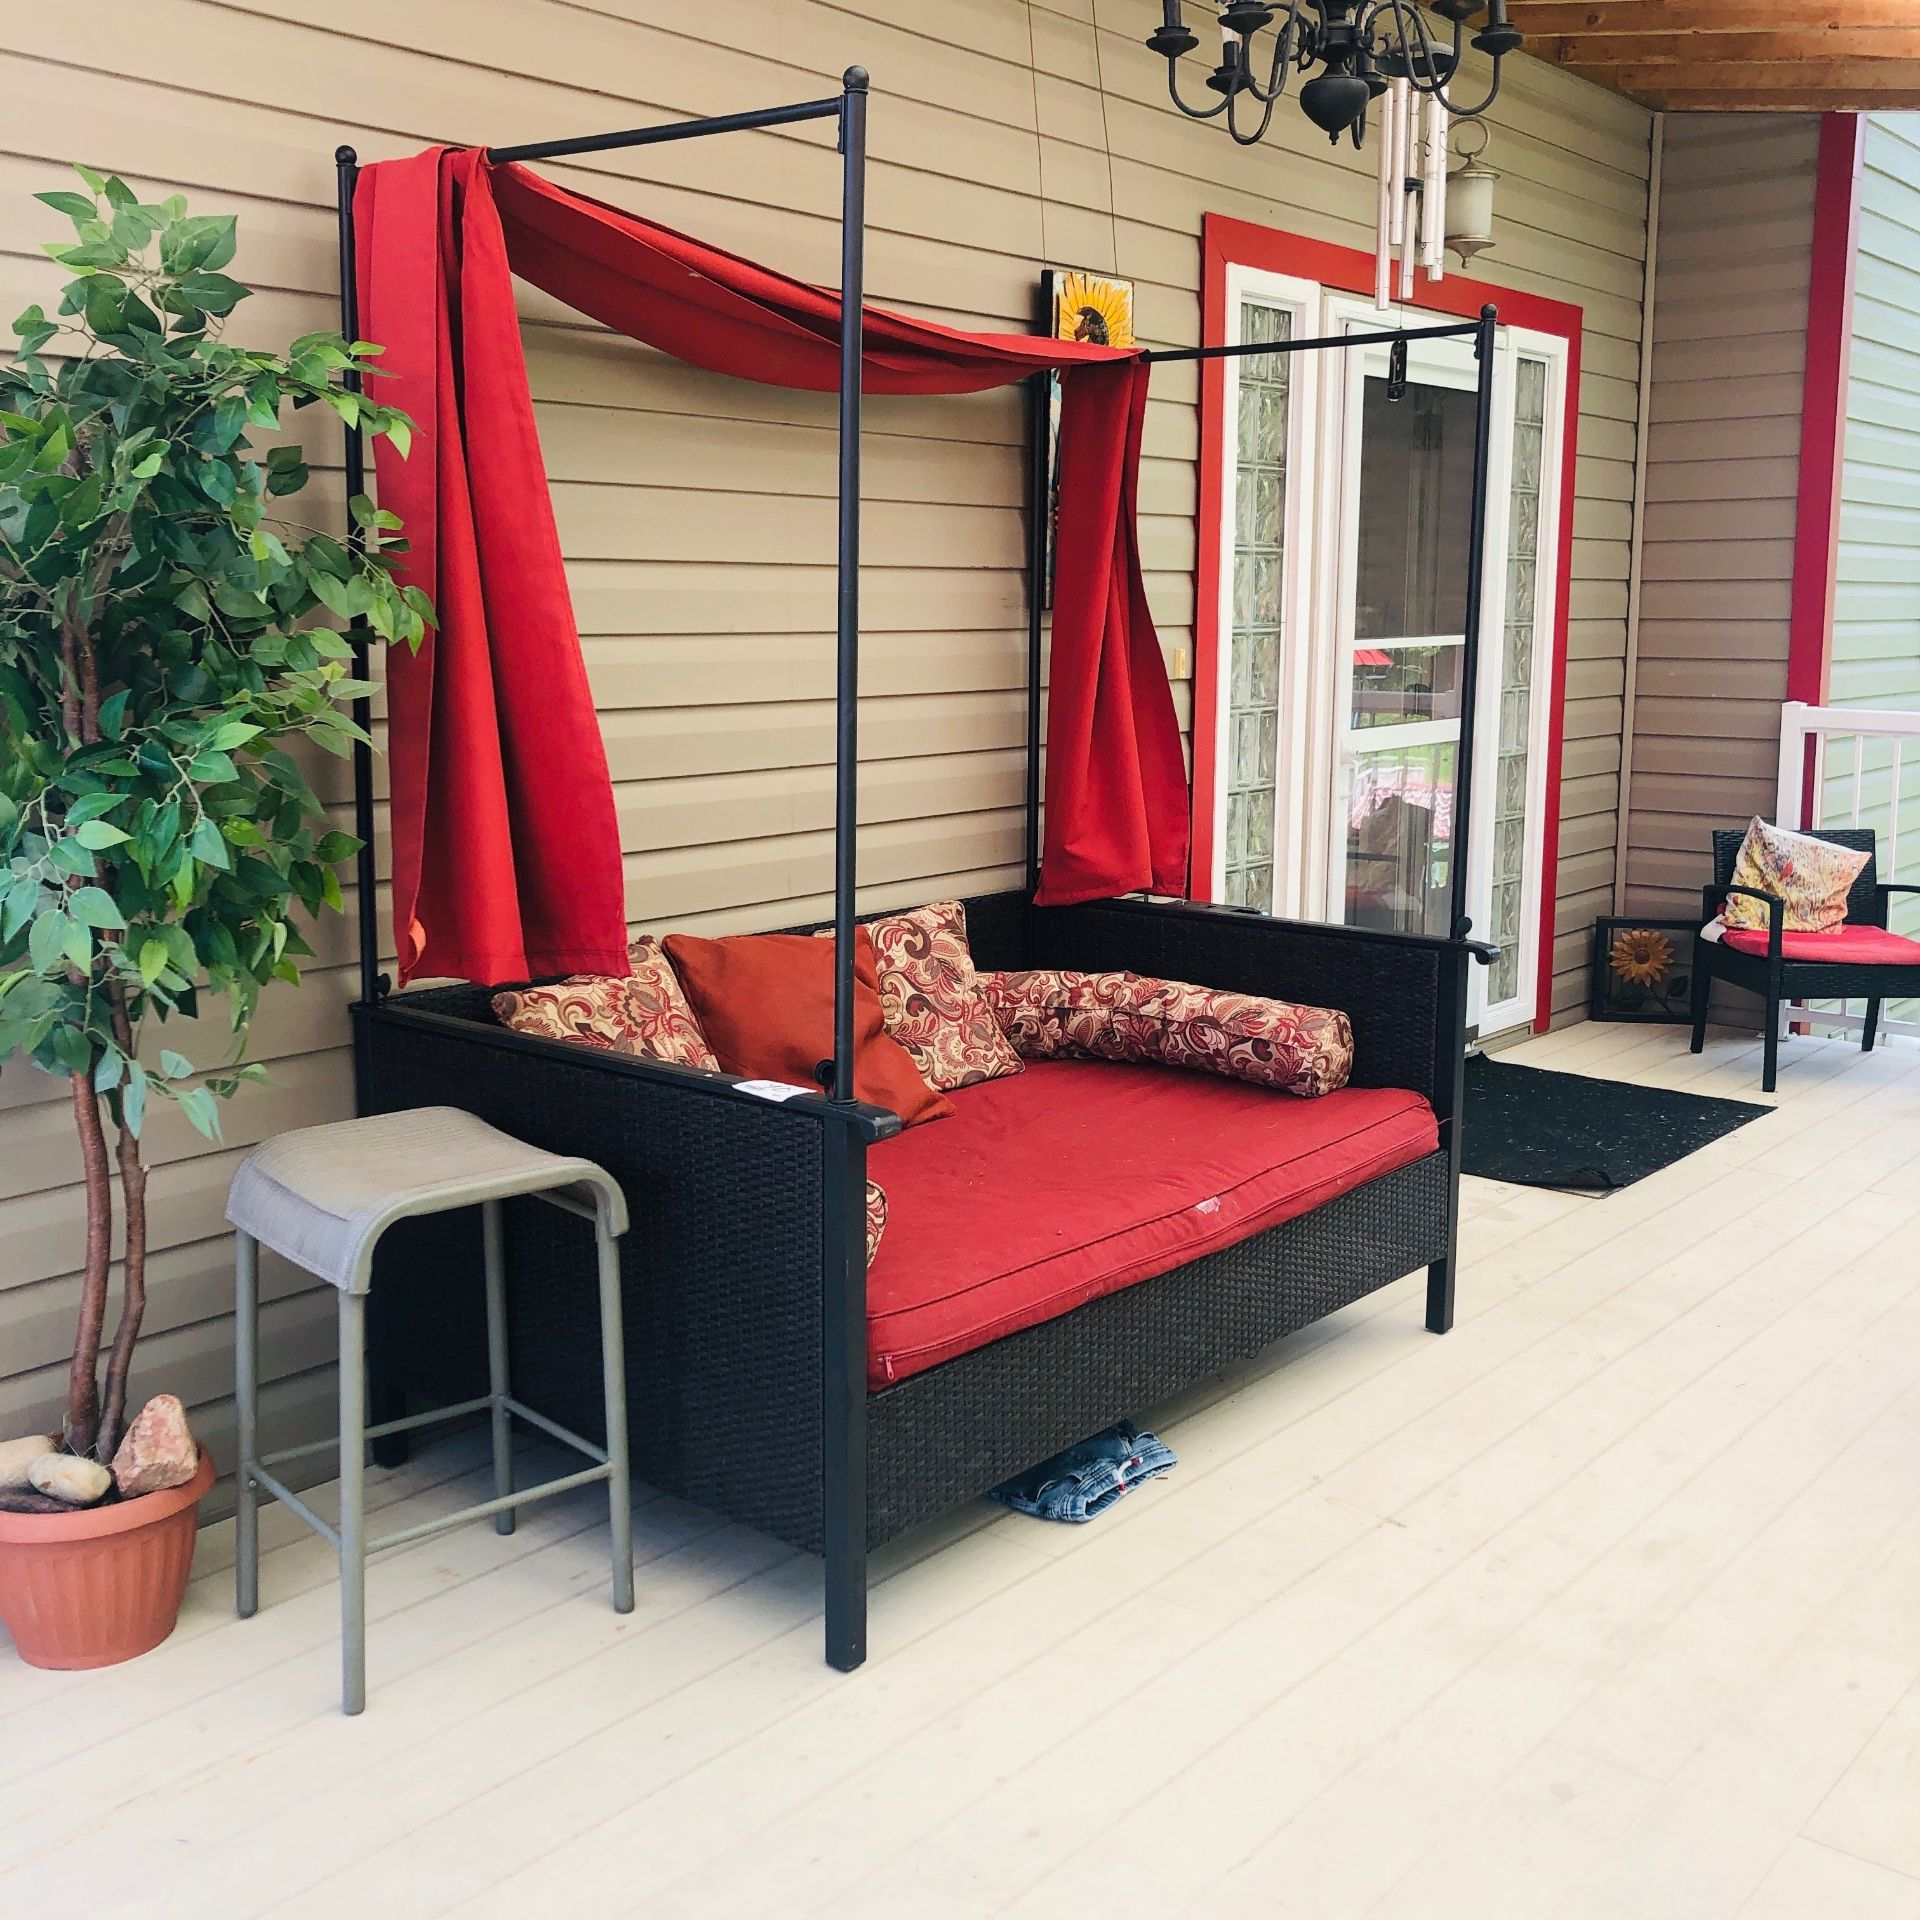 Patio day bed with cover & cushions - Image 2 of 2